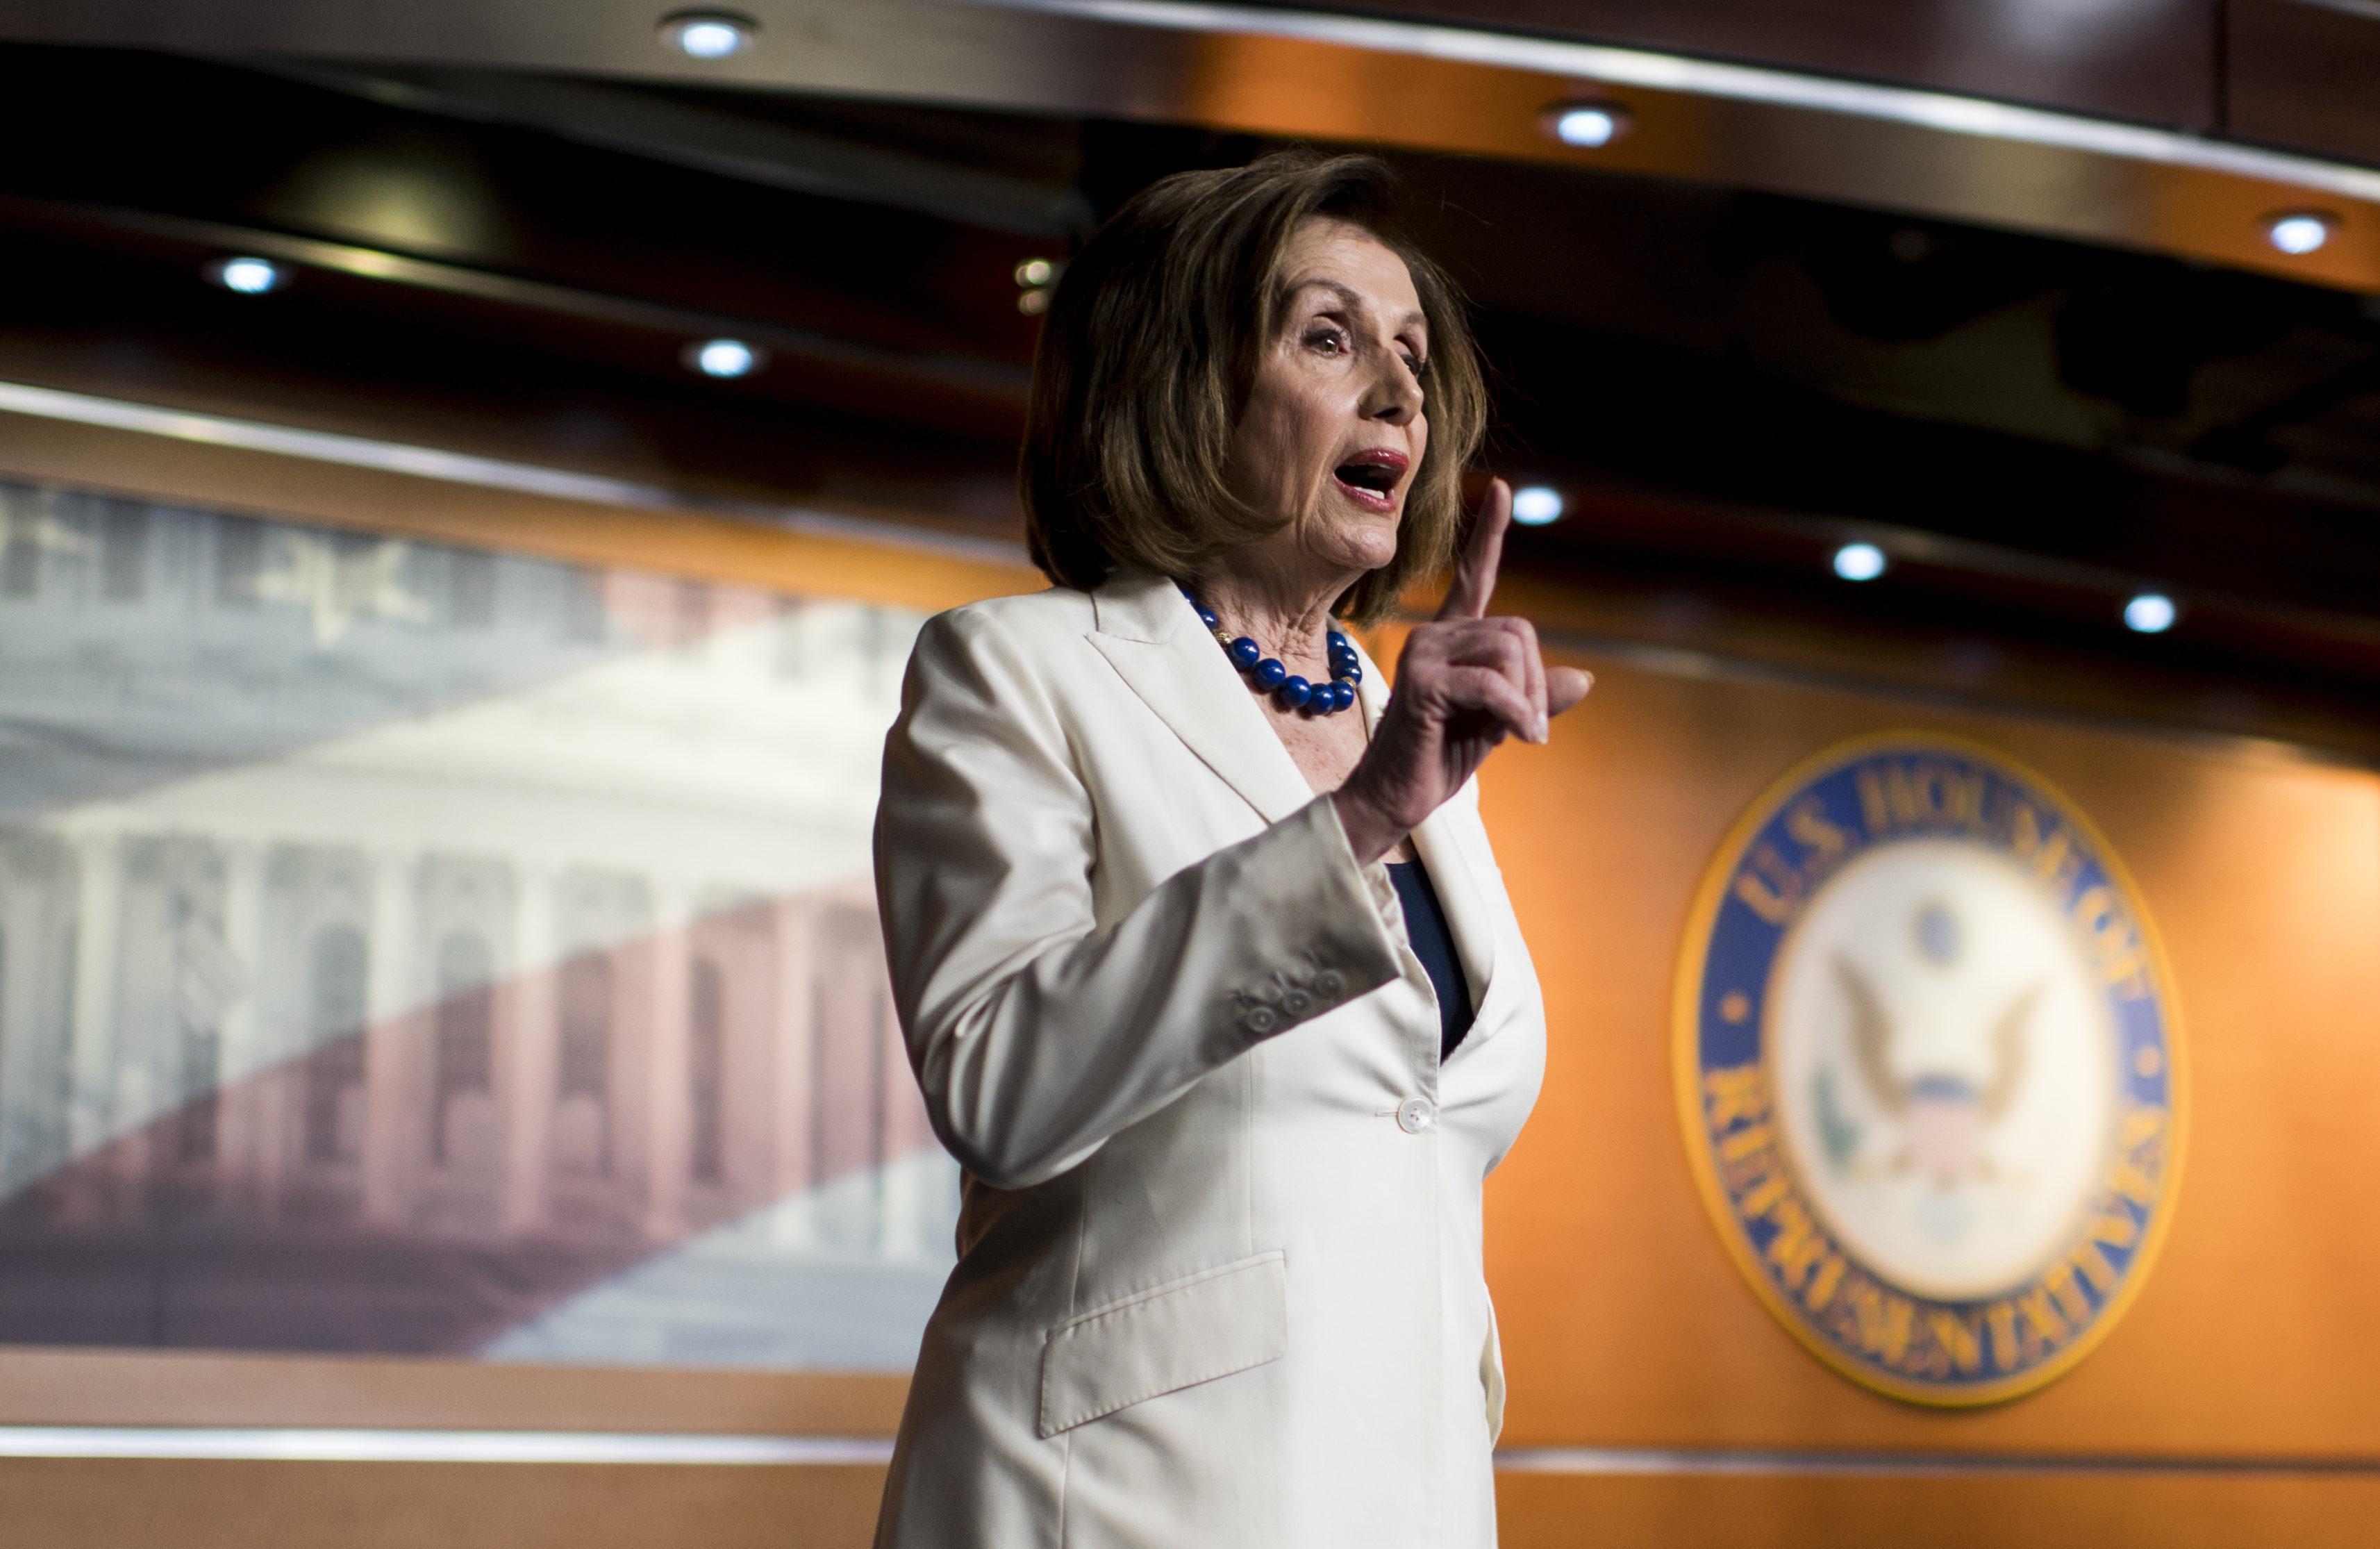 UNITED STATES - DECEMBER 5: As she ends her weekly news conference Speaker of the House Nancy Pelosi, D-Calif., angrily reacts after a reporter asks if she hates the Presidsent on Thursday, Dec. 5, 2019. (Photo By Bill Clark/CQ Roll Call)